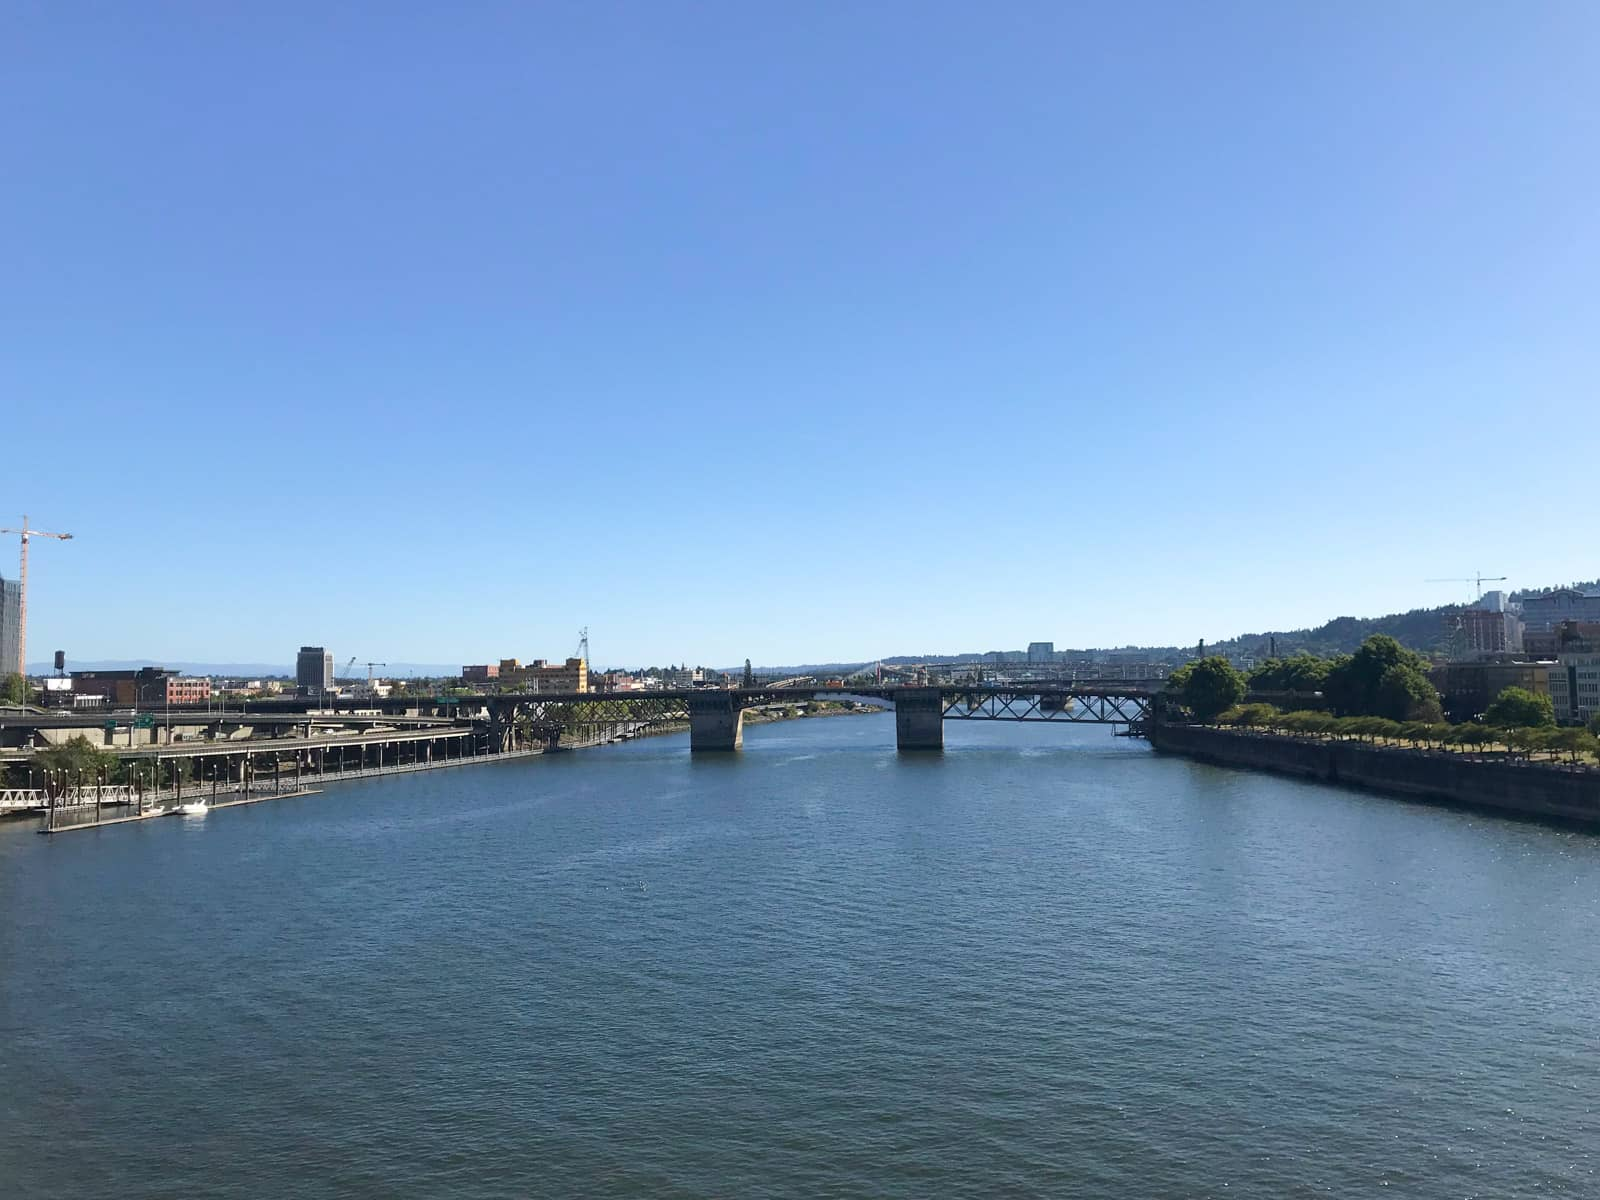 A river with a bridge running across it, seen from a point in the middle of the river's width. It is a bright day with blue skies